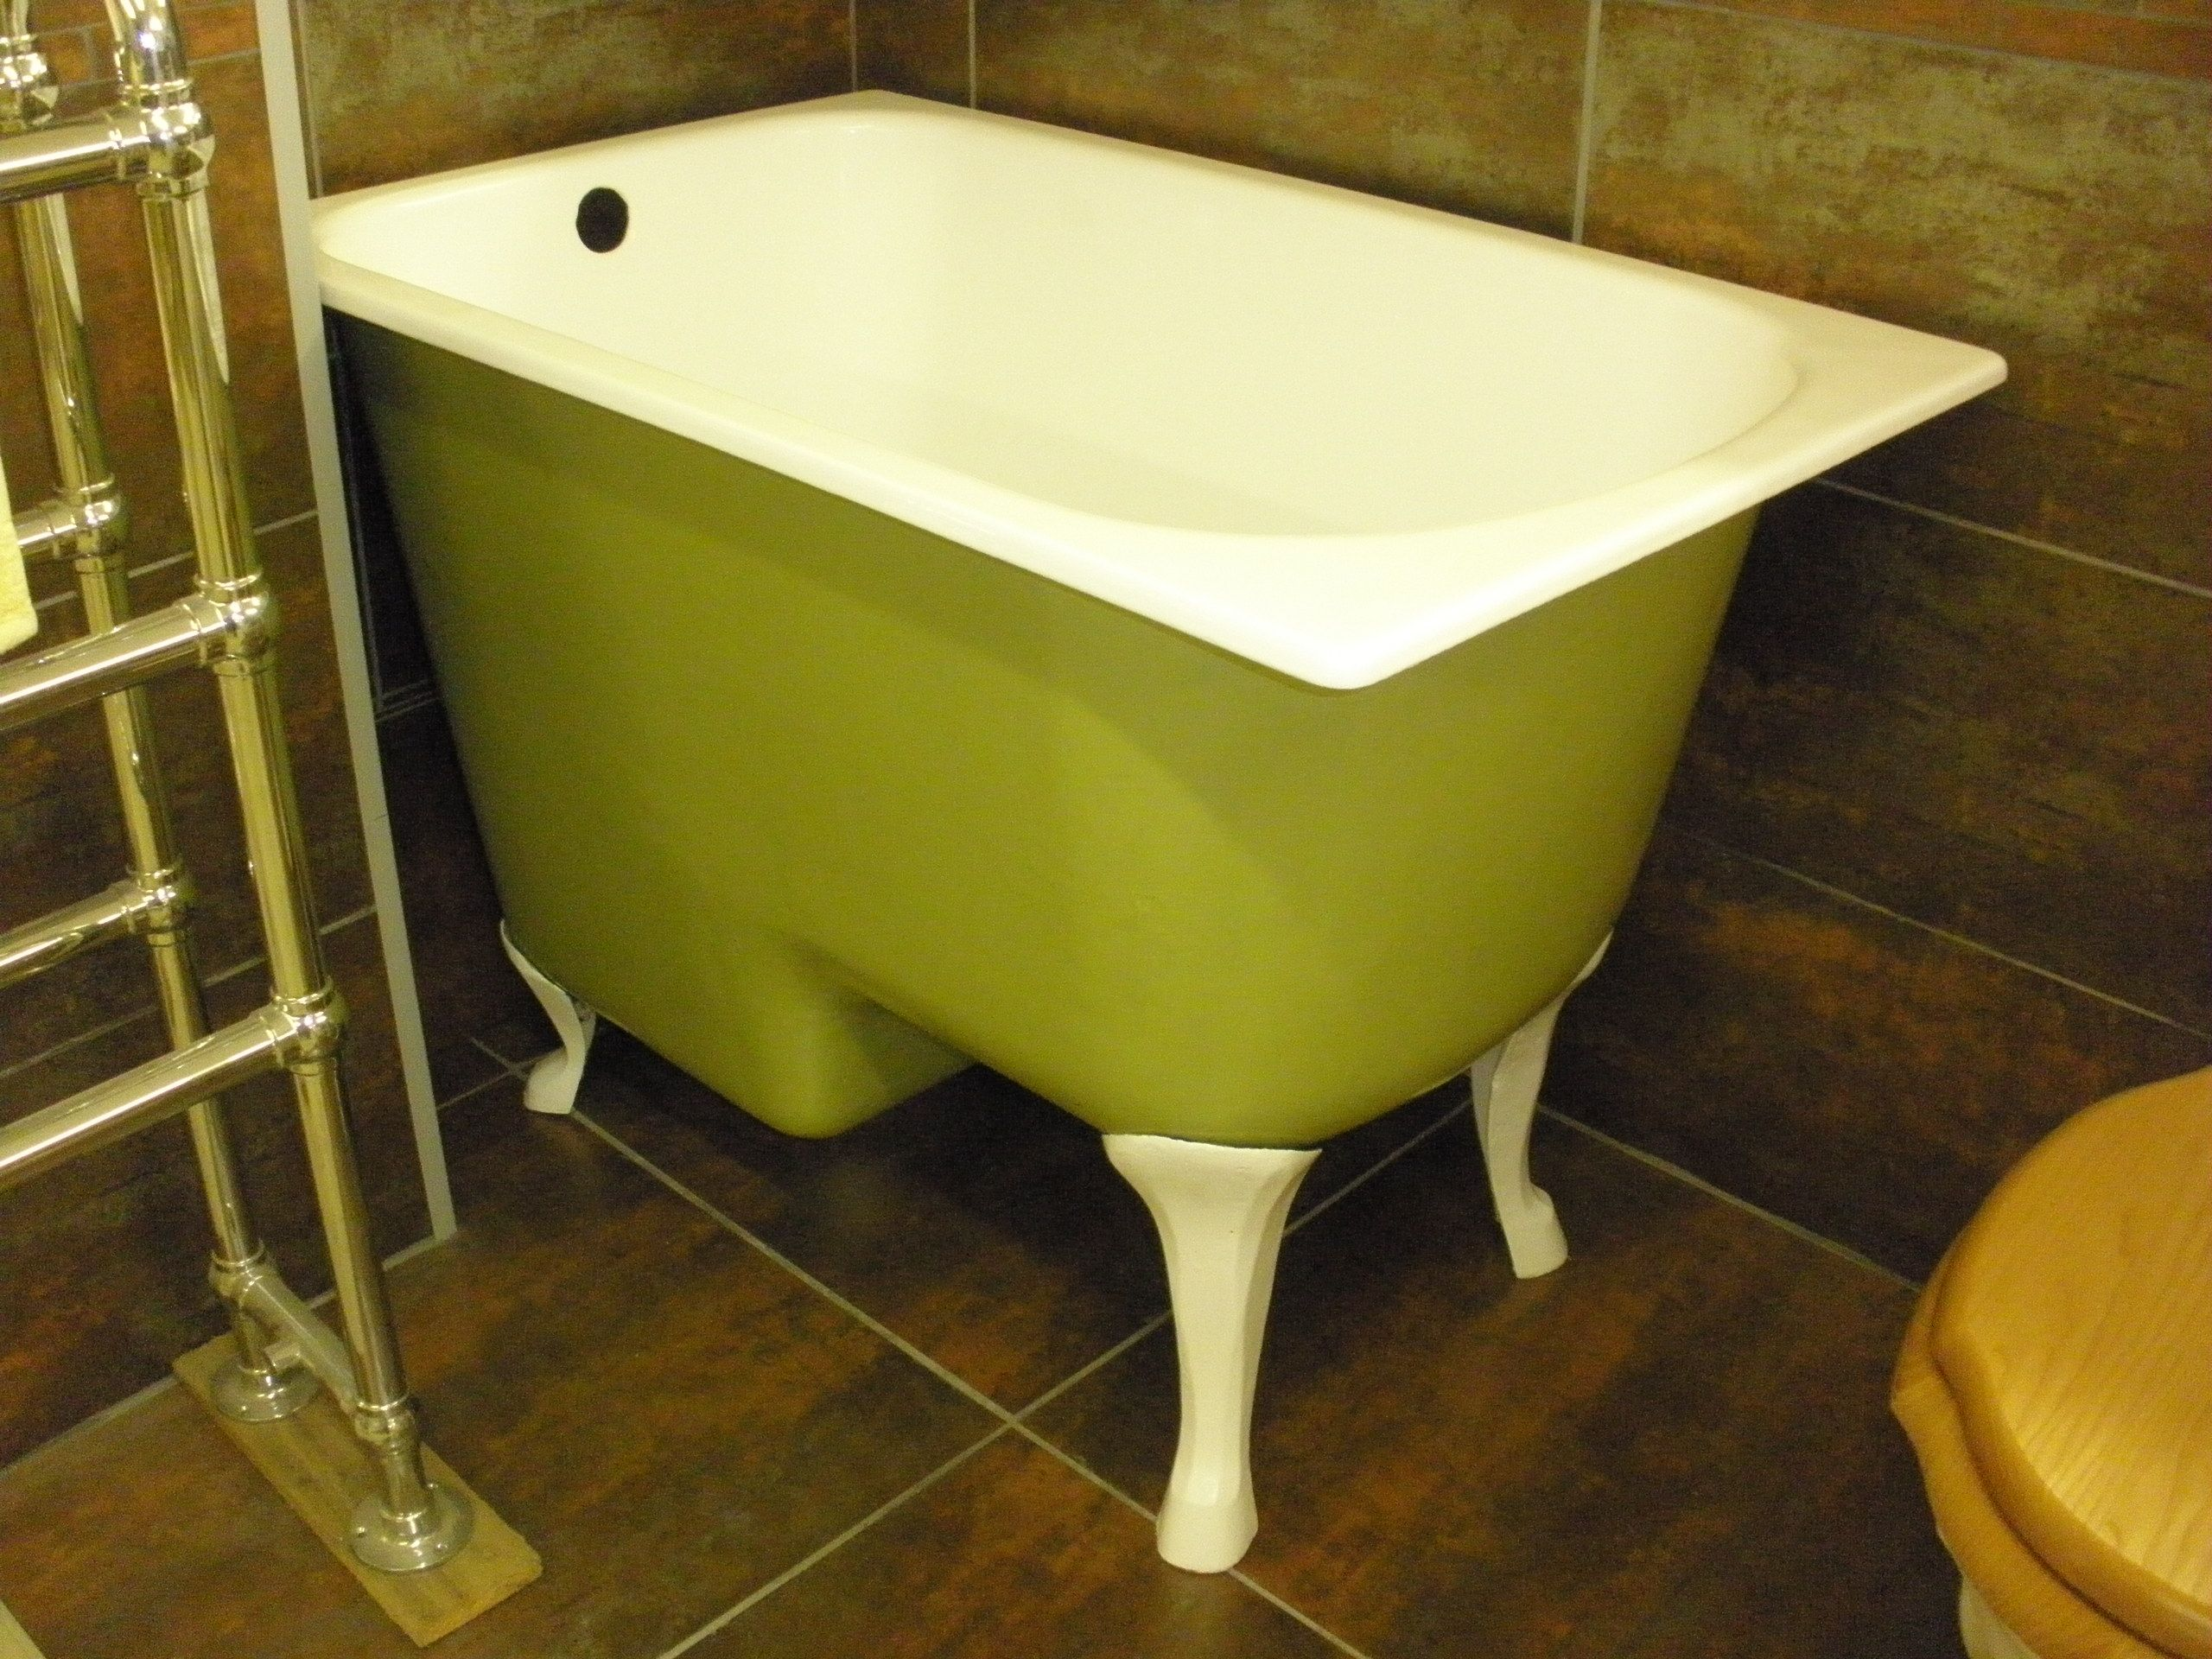 Sitz Bath Australia Sitz Hip Bath I Love It Will Totally Have One Of These In Our En